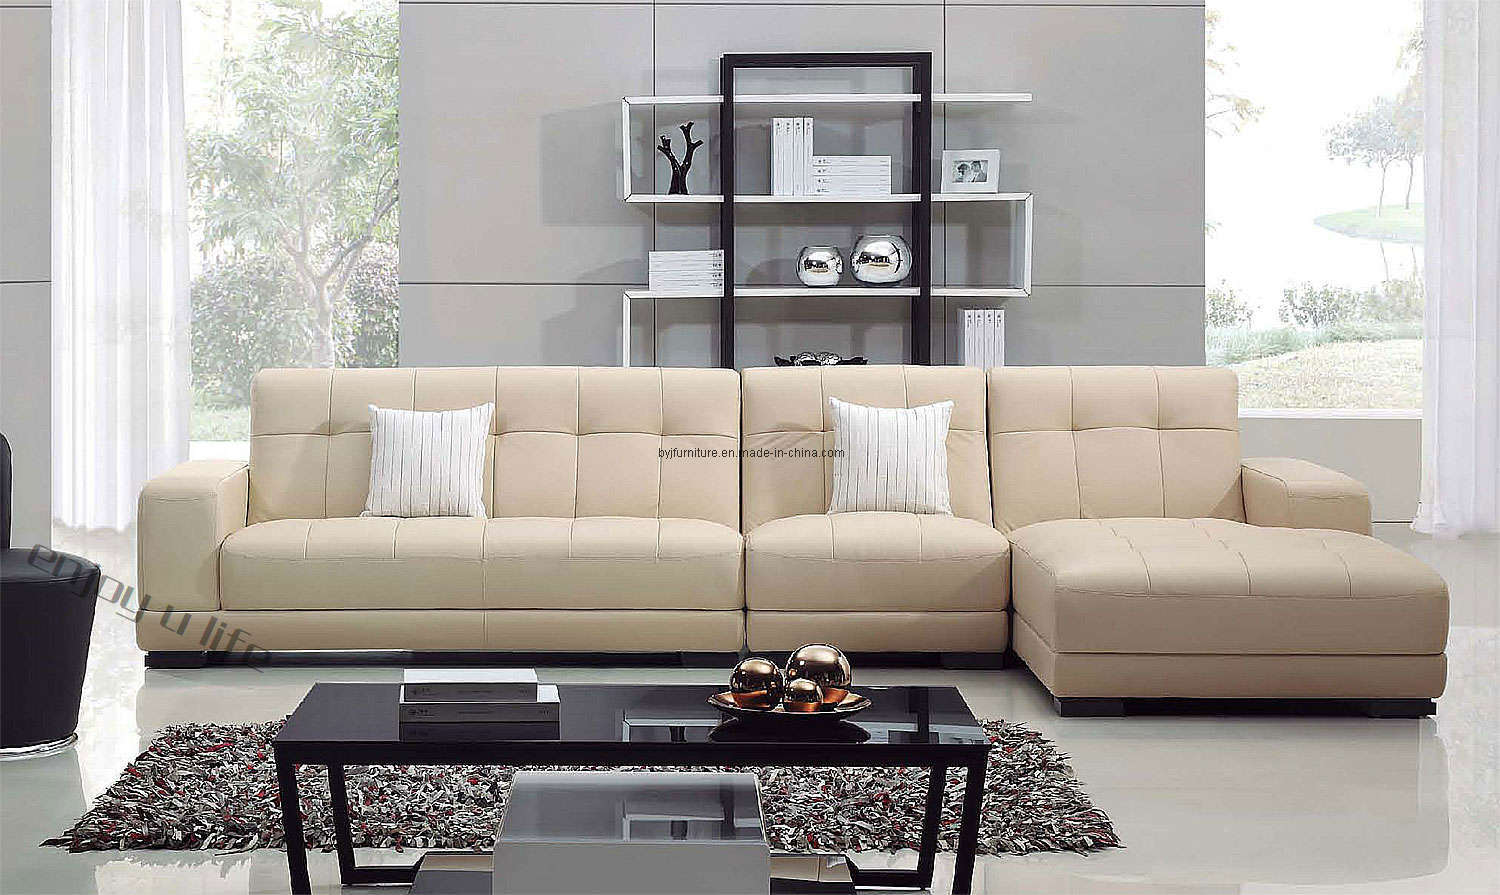 Sofas for living room 2017 grasscloth wallpaper - Modern living room furniture designs ...